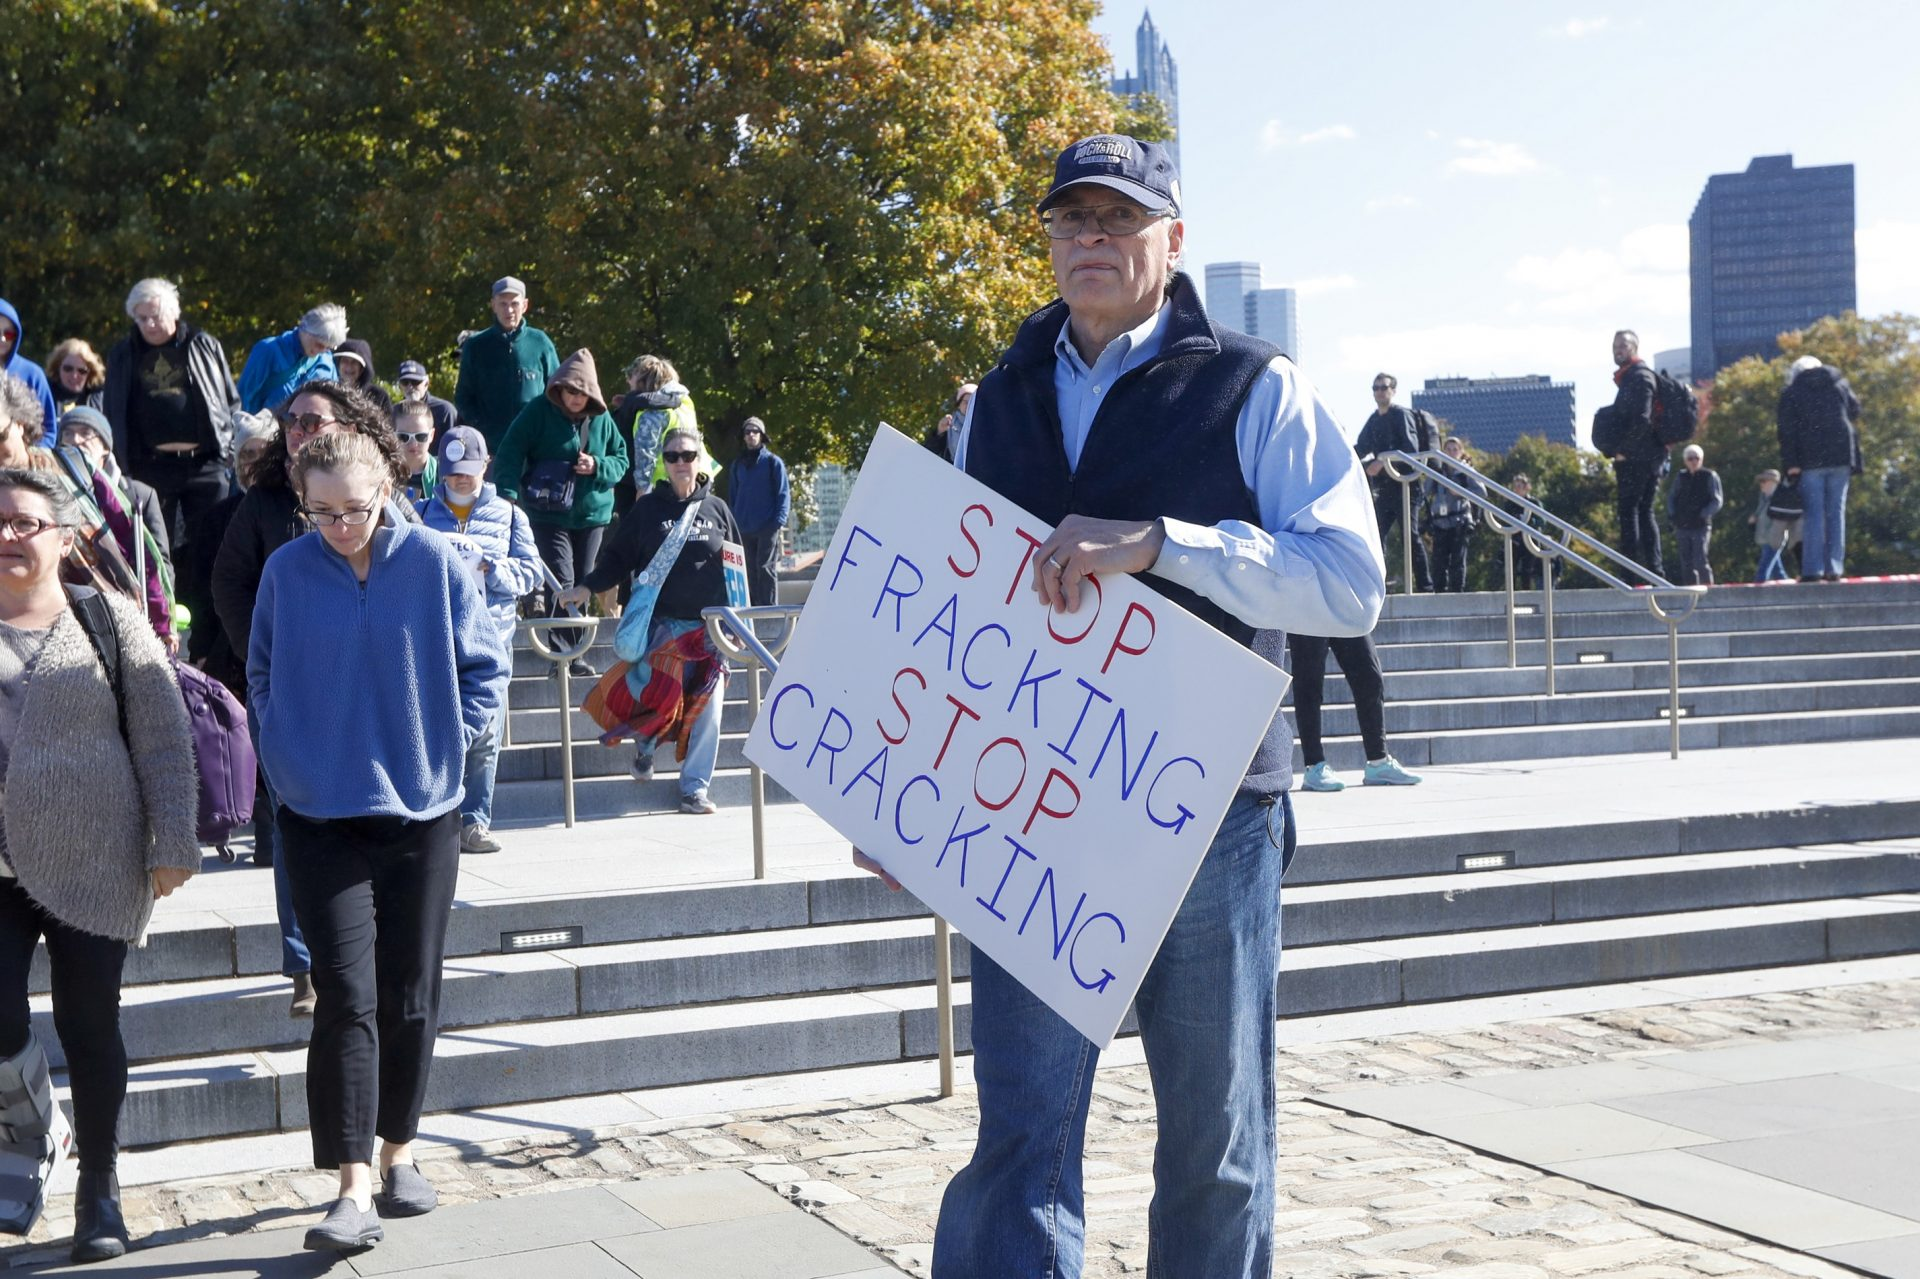 Proposals To Ban Fracking Could Hurt Democrats In Key States Like Pa Witf